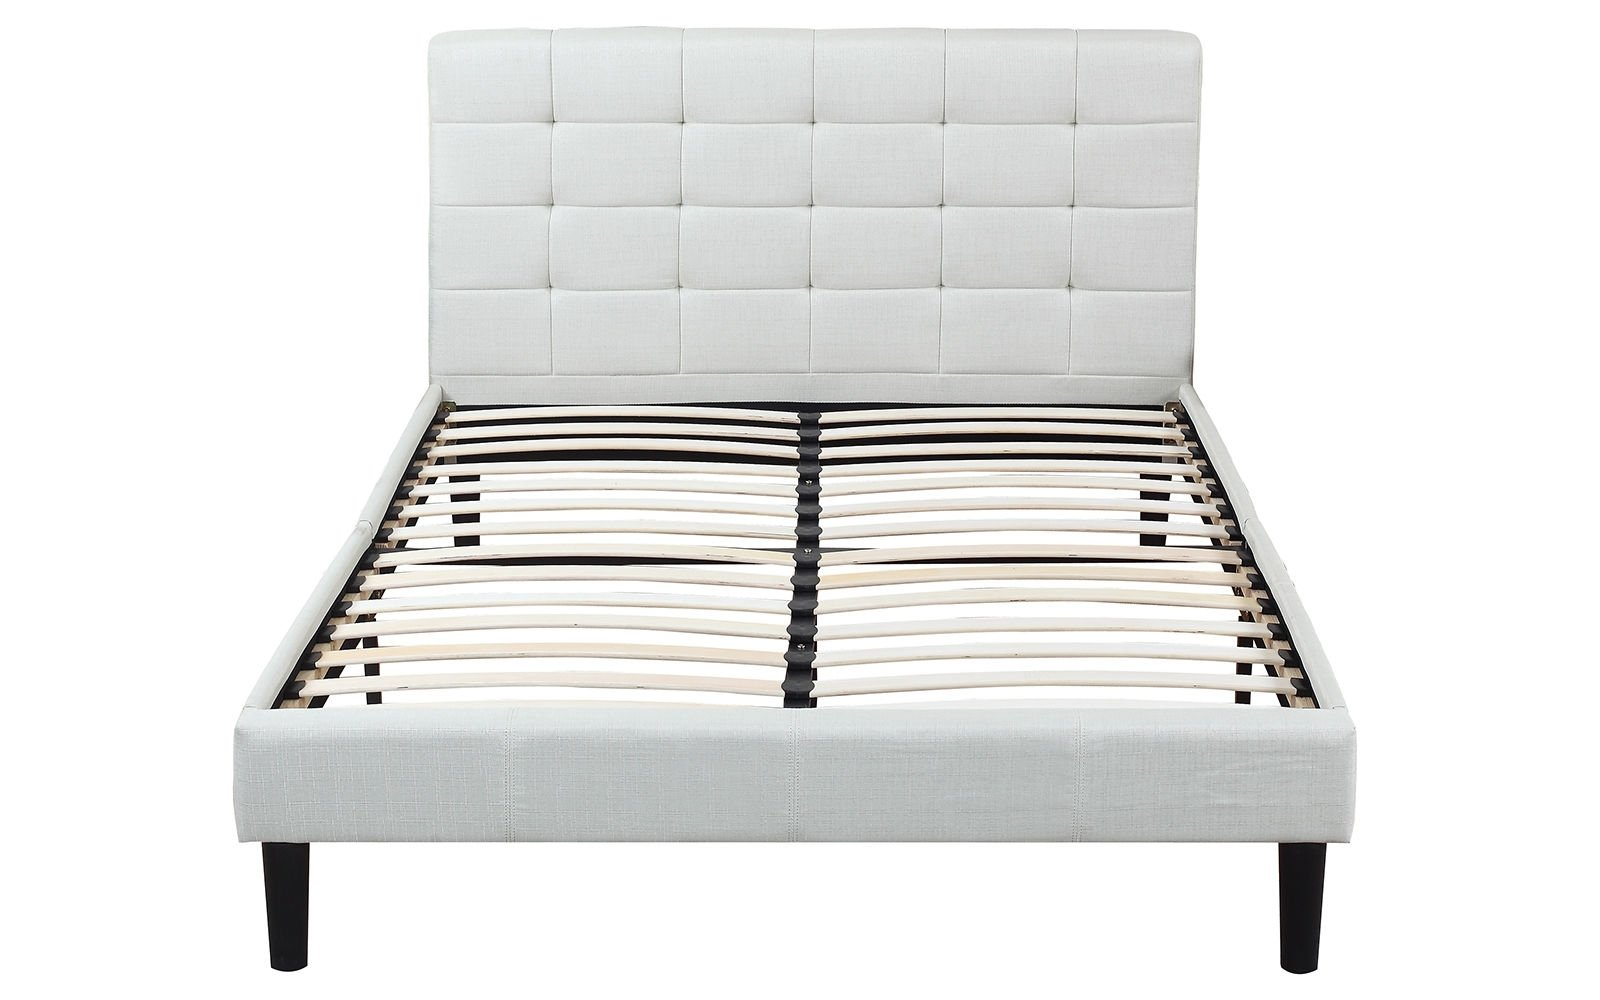 Deluxe Beige Linen Low Profile Platform Bed Frame With Tufted